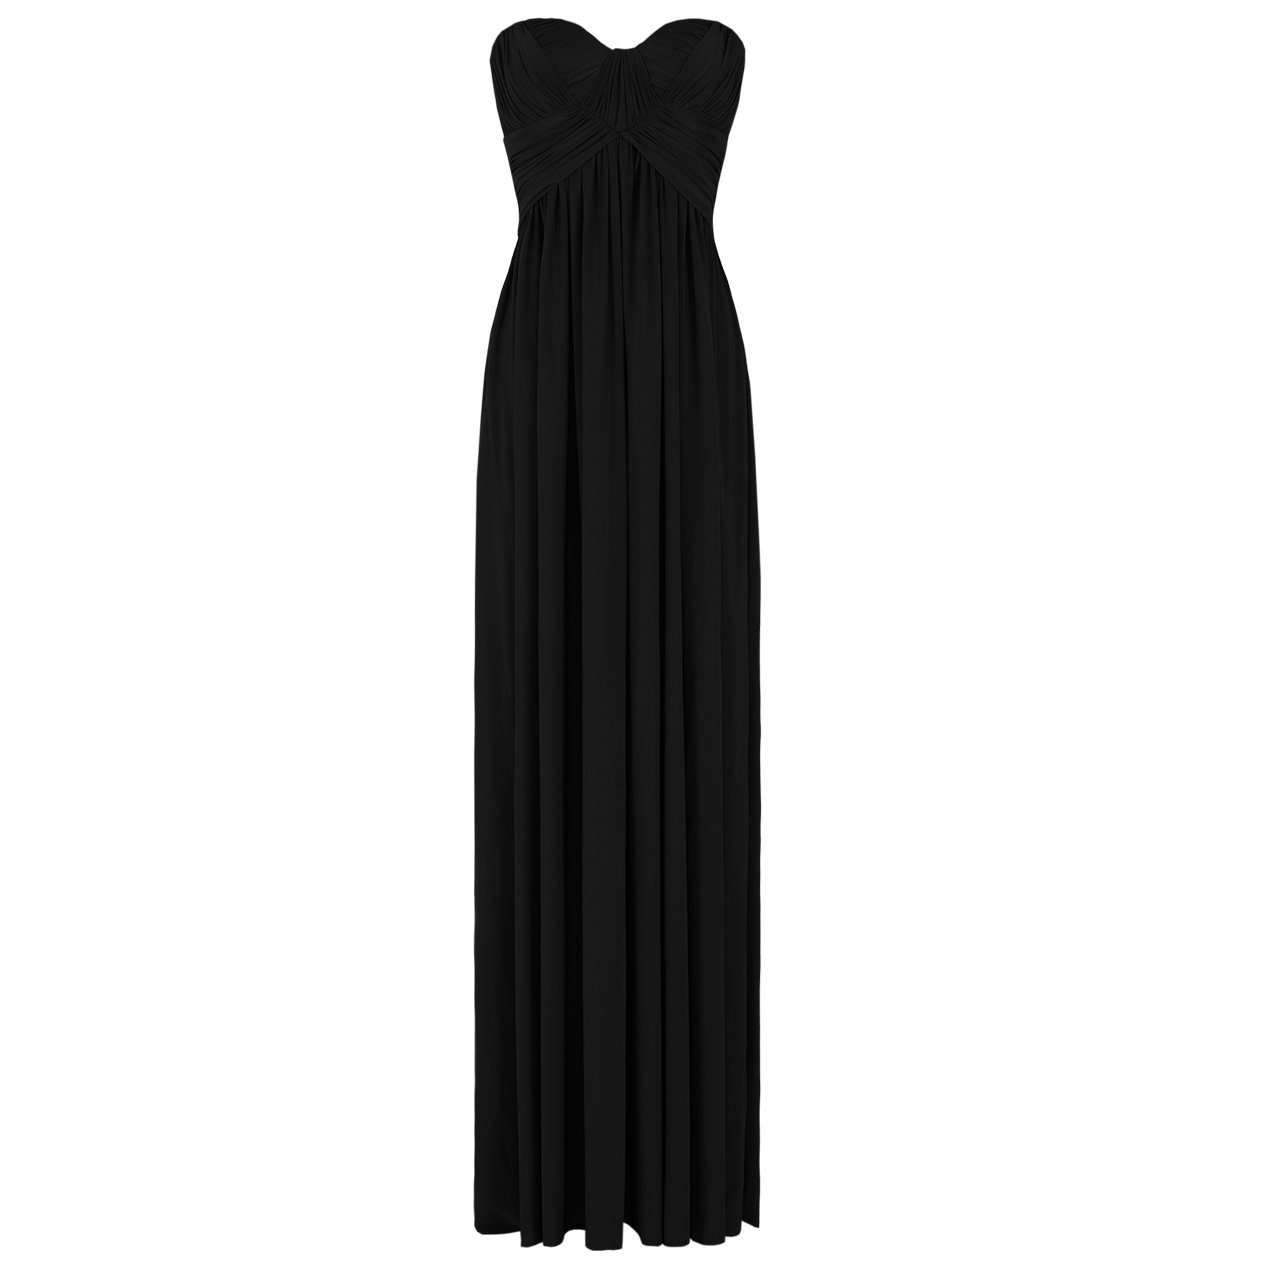 JESSICA ALBA BLACK LADIES STRAPLESS LONG SUMMER EVENING PARTY PROM GOWN MAXI DRESS UK 10-12, US 6-8